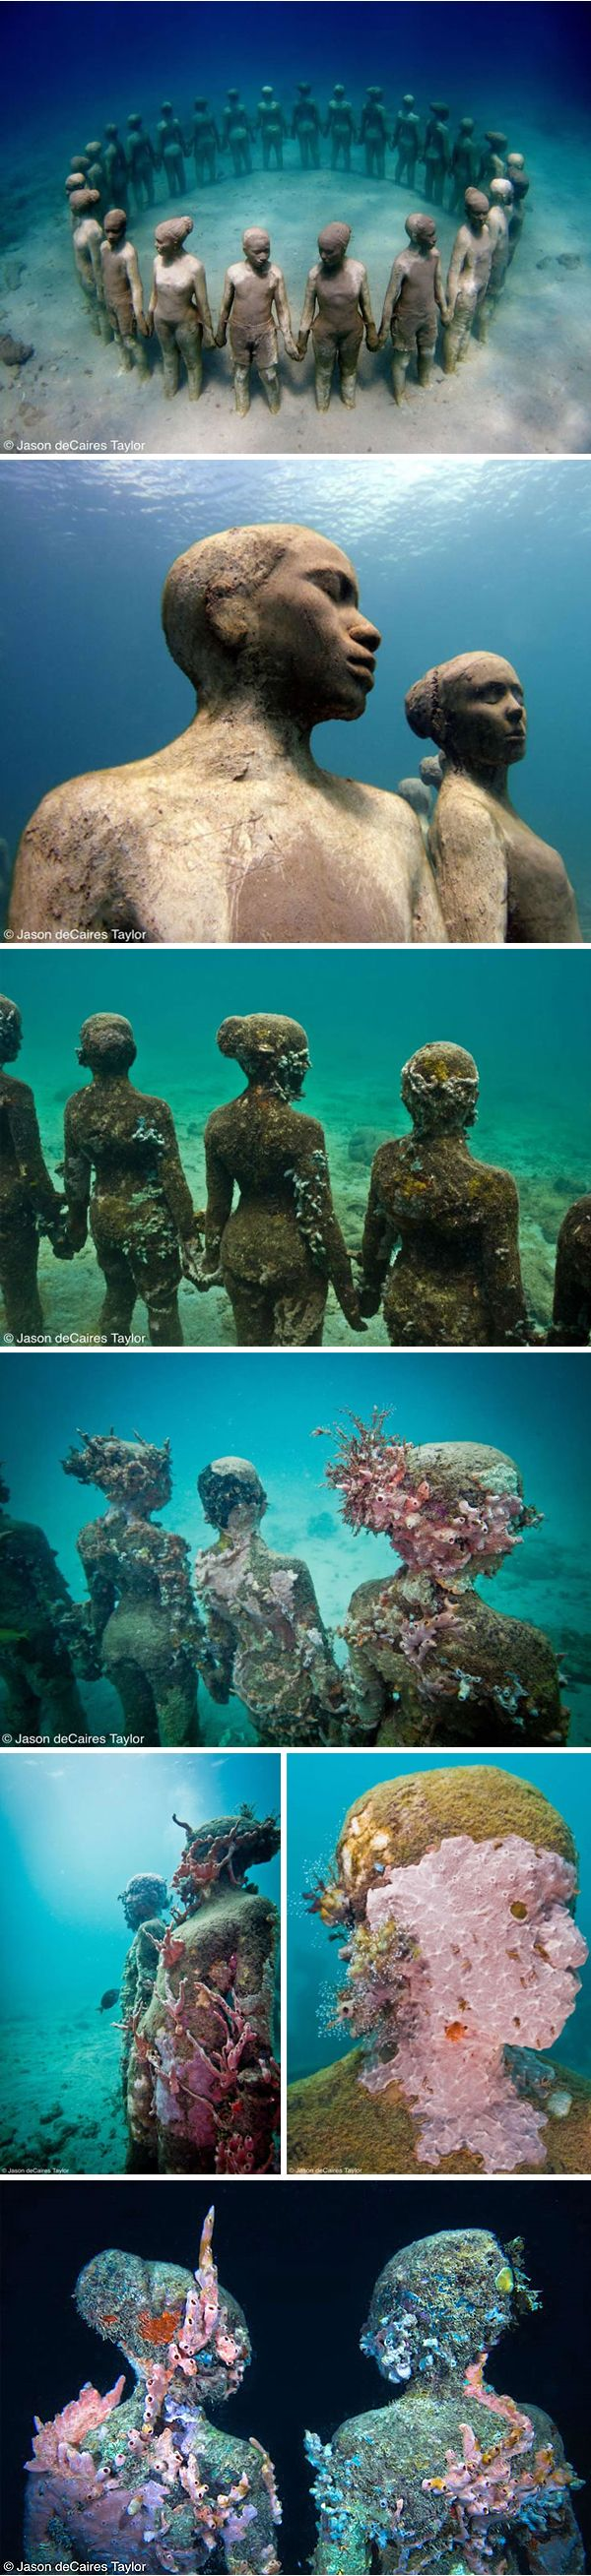 I love everything about this. Vicissitudes by Jason deCaires Taylor